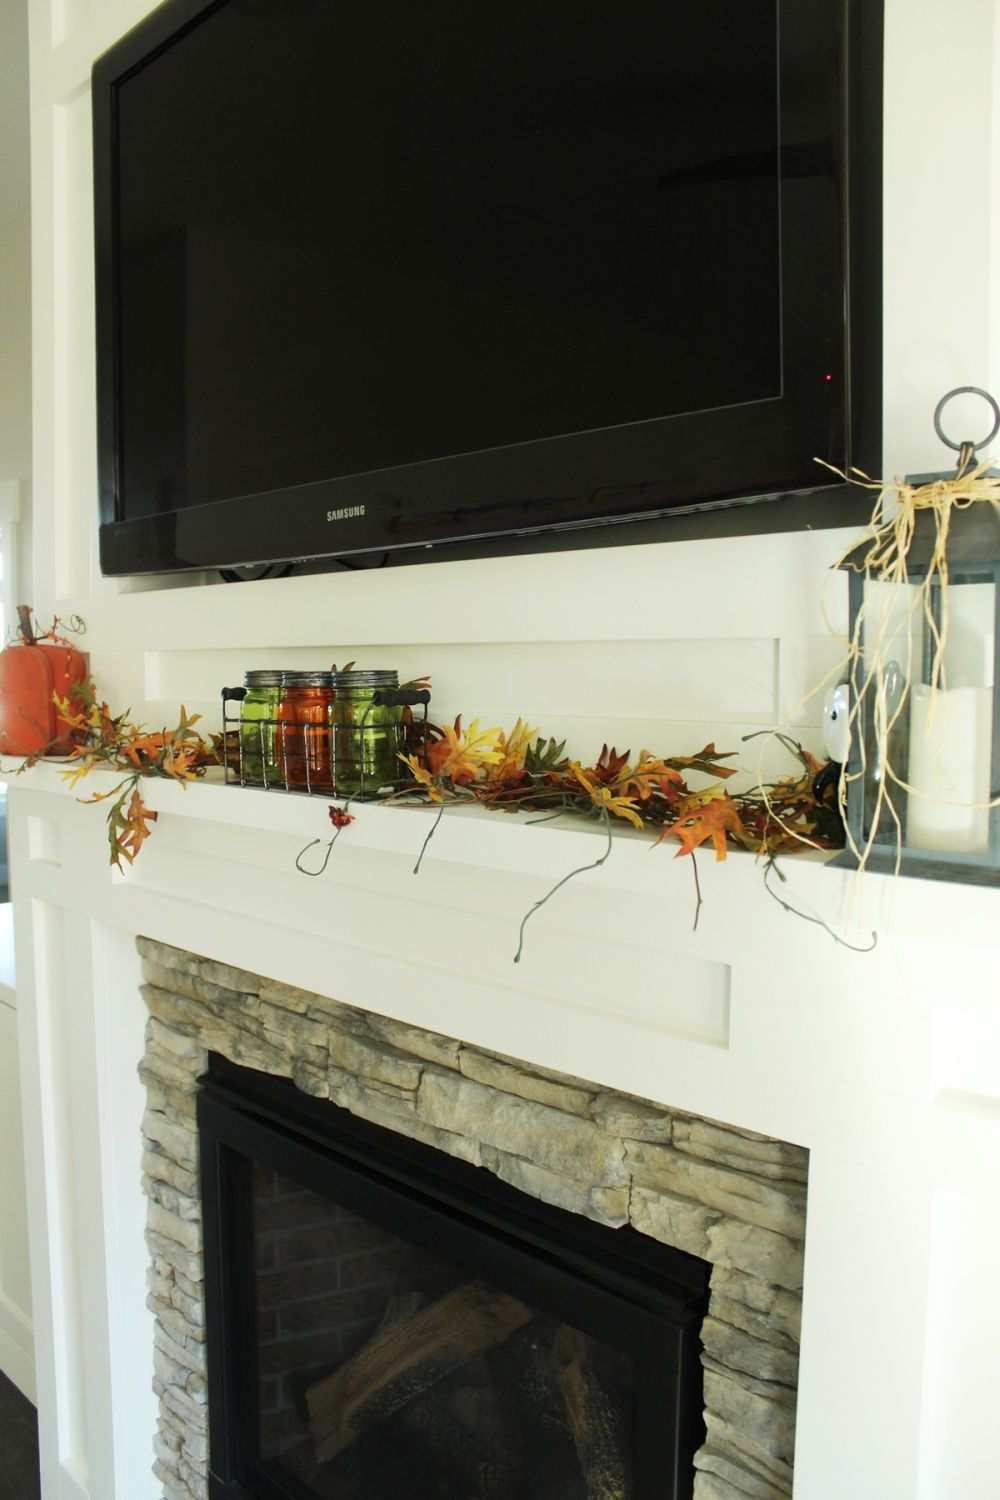 Decorate the living room fireplace mantel